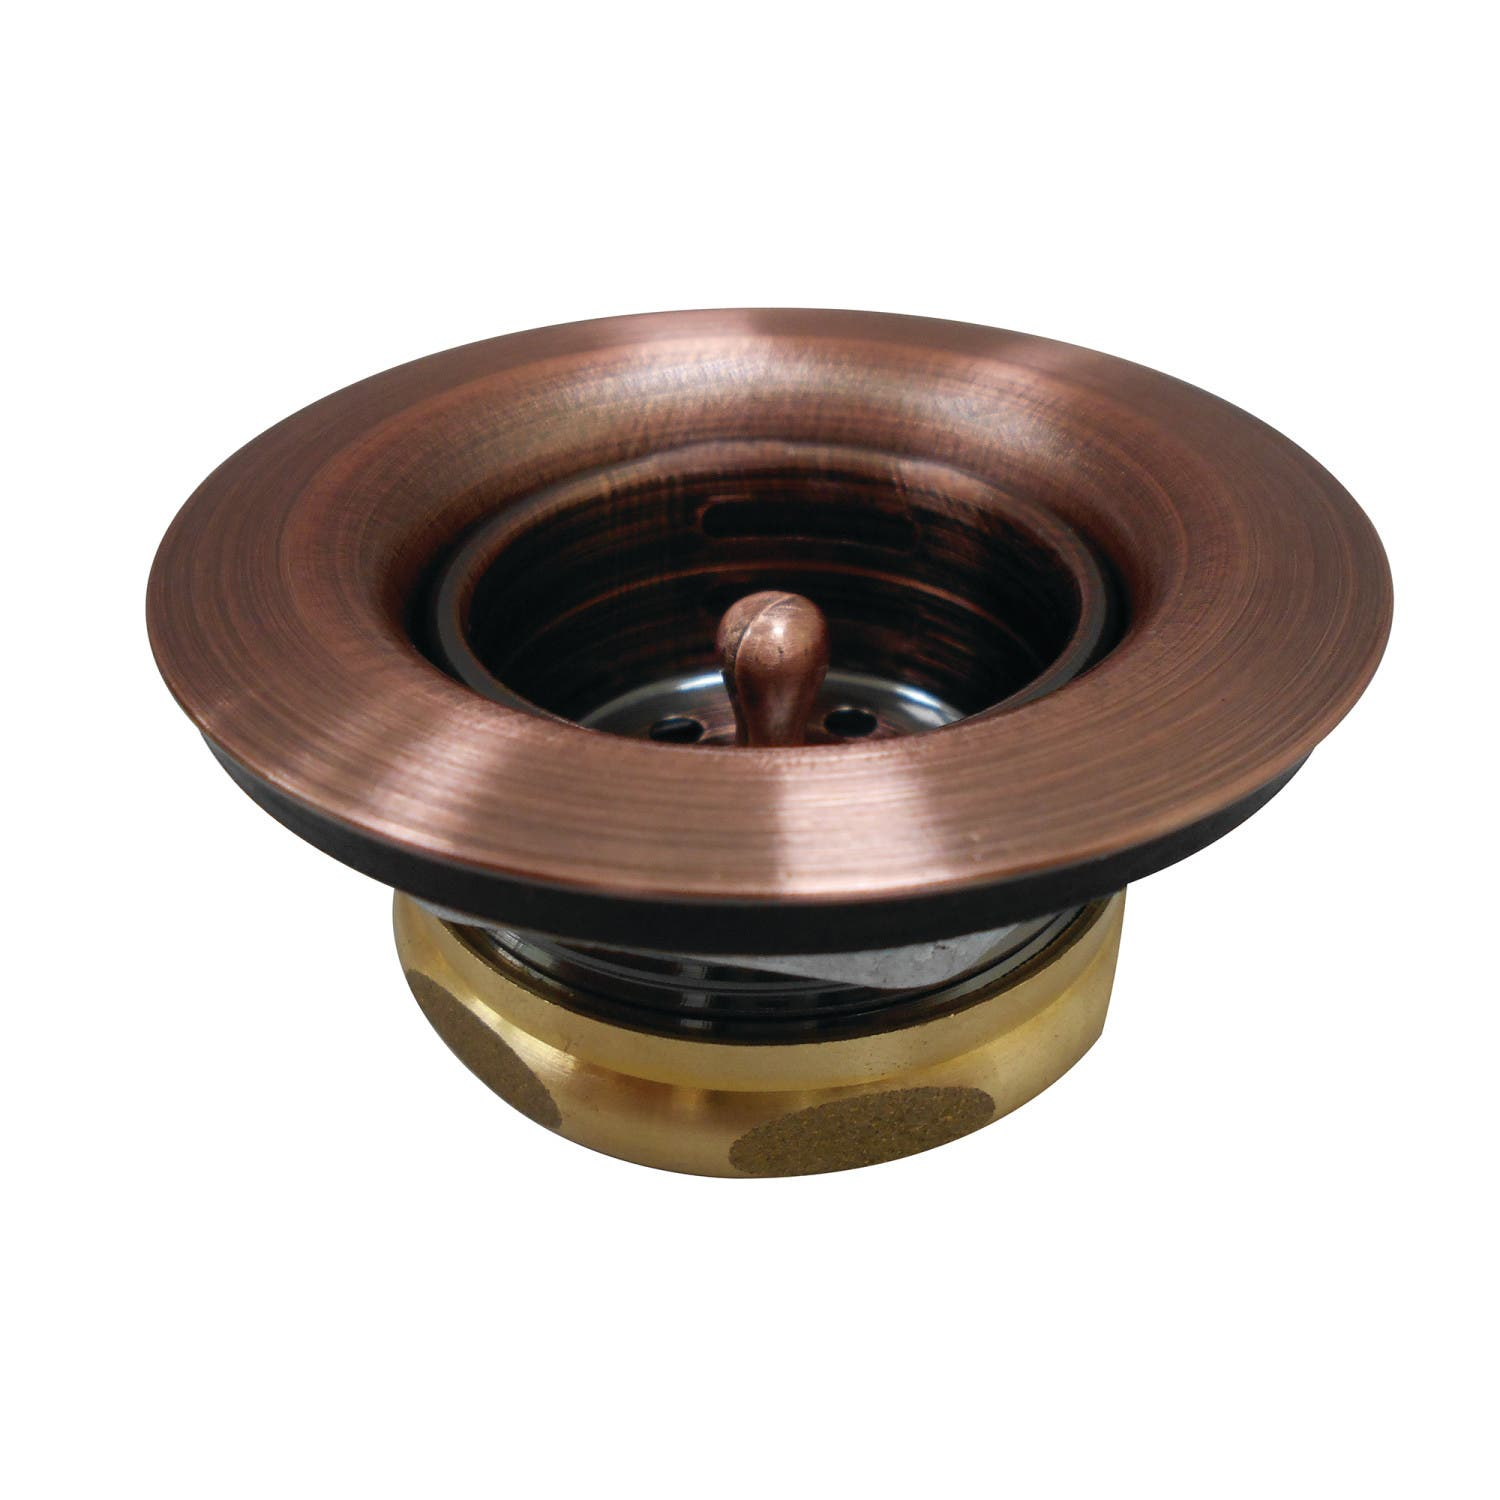 Kingston Brass K461BAC Tacoma Stainless Steel Bar Sink Duo Basket Strainer, Antique Copper